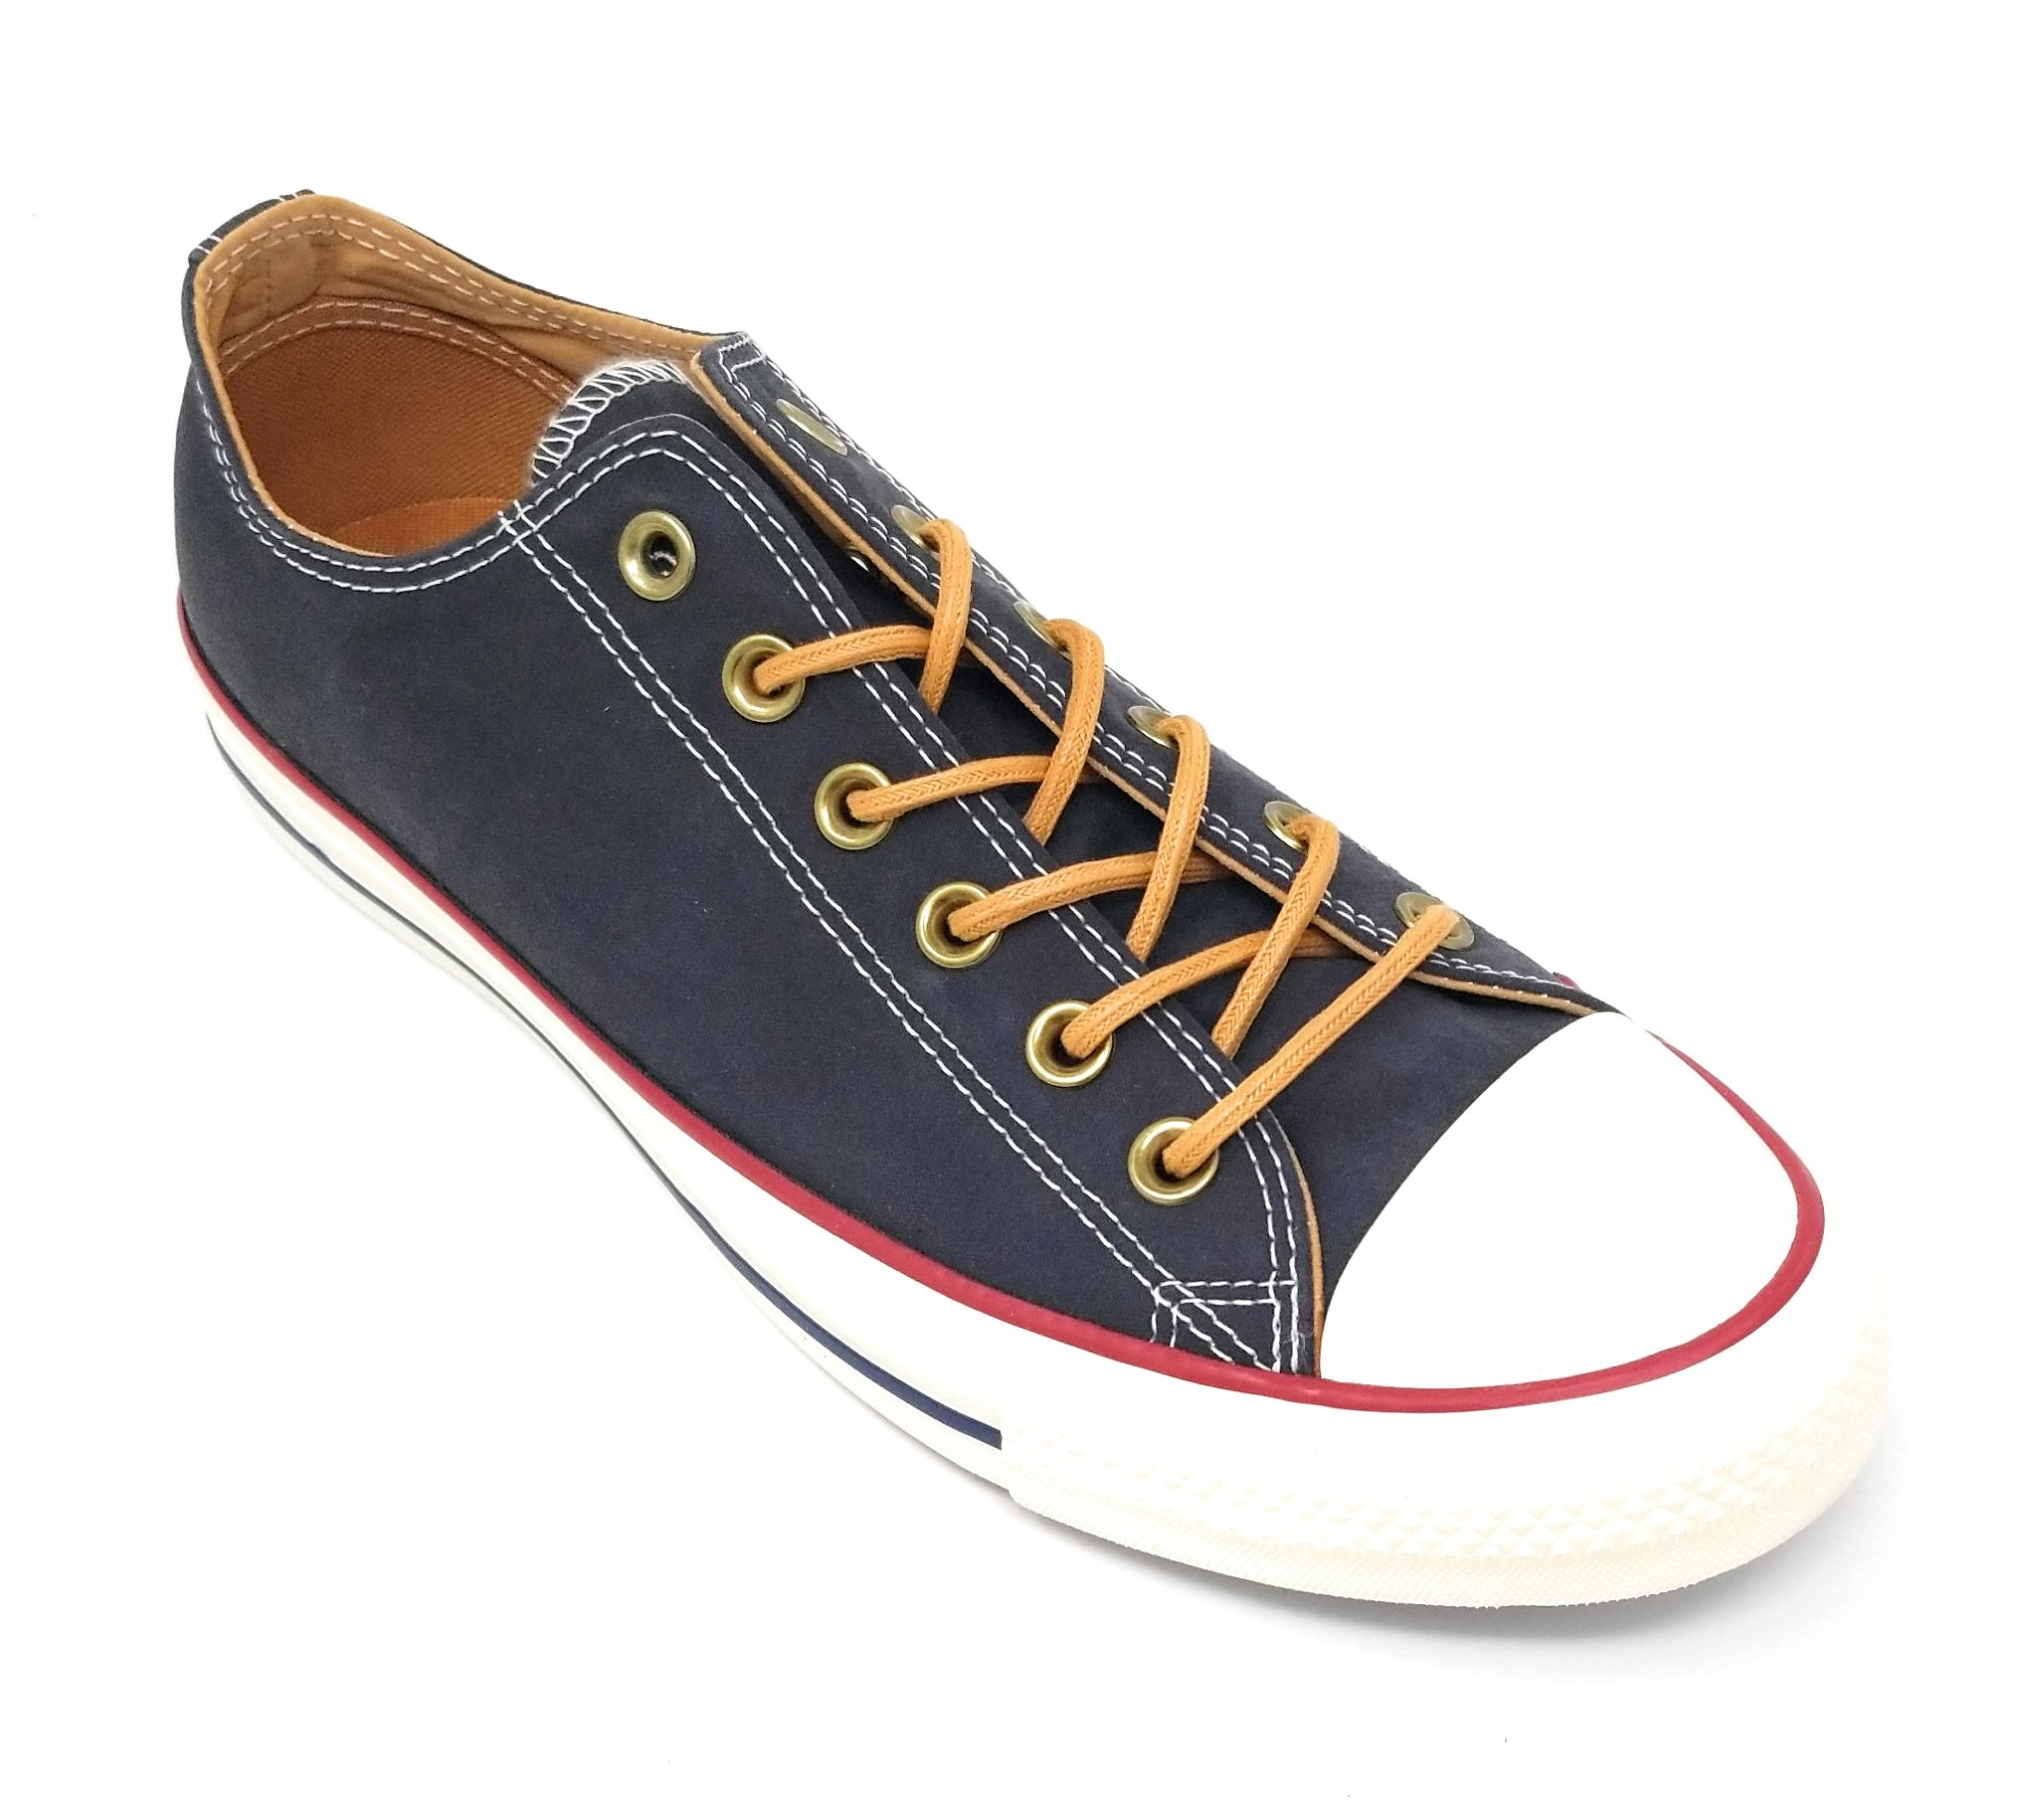 8f7fd33e973dec Galleon - Converse Mens Chuck Taylor All Star Peached Canvas Oxford Fashion  Sneaker